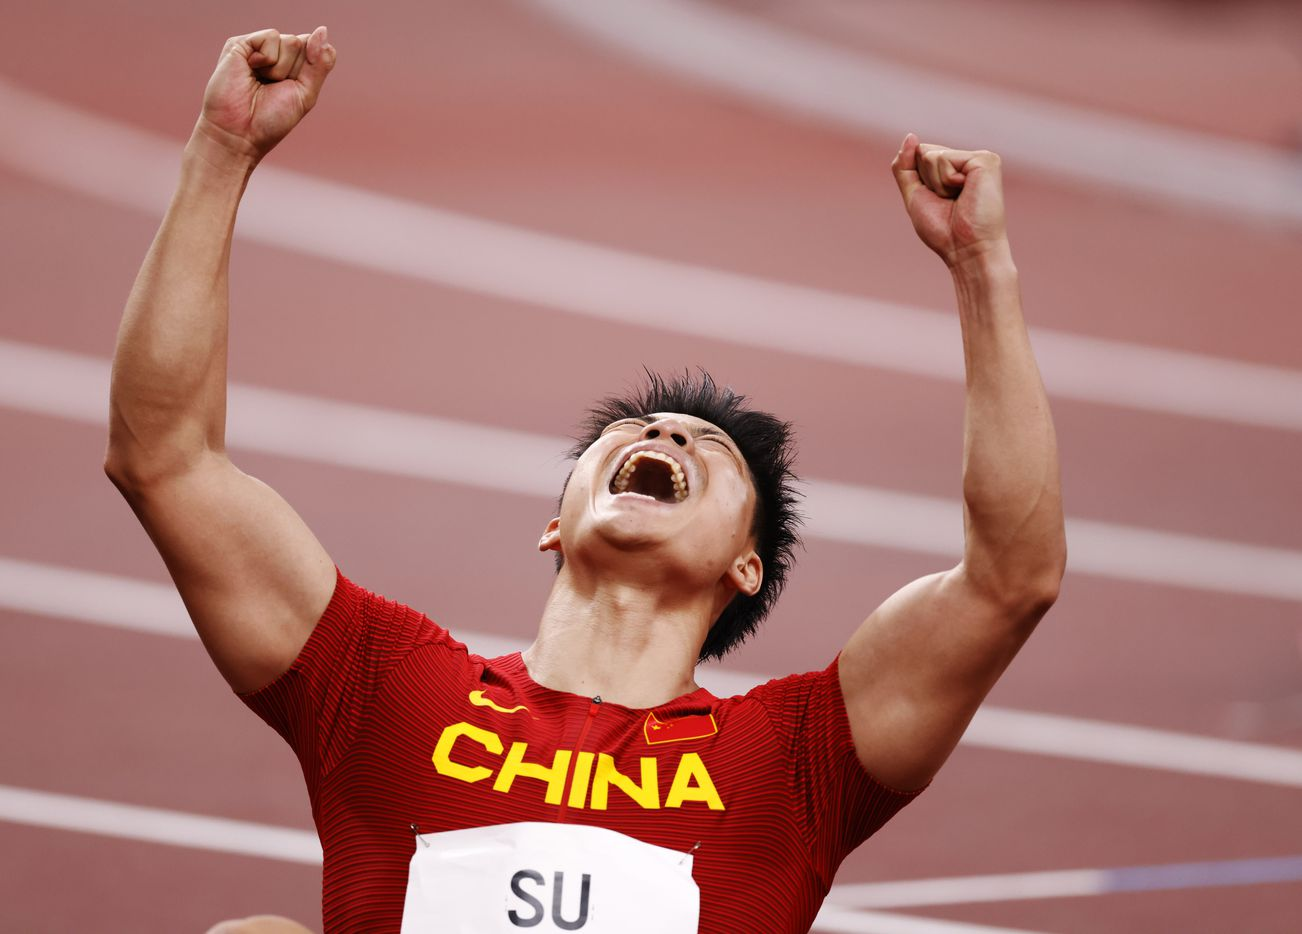 China's Su Bingtian celebrates his run in the 100 meter semifinal during the postponed 2020 Tokyo Olympics at Olympic Stadium, on Sunday, August 1, 2021, in Tokyo, Japan. Bingtian ran a 9.83 and advanced to the final.  (Vernon Bryant/The Dallas Morning News)